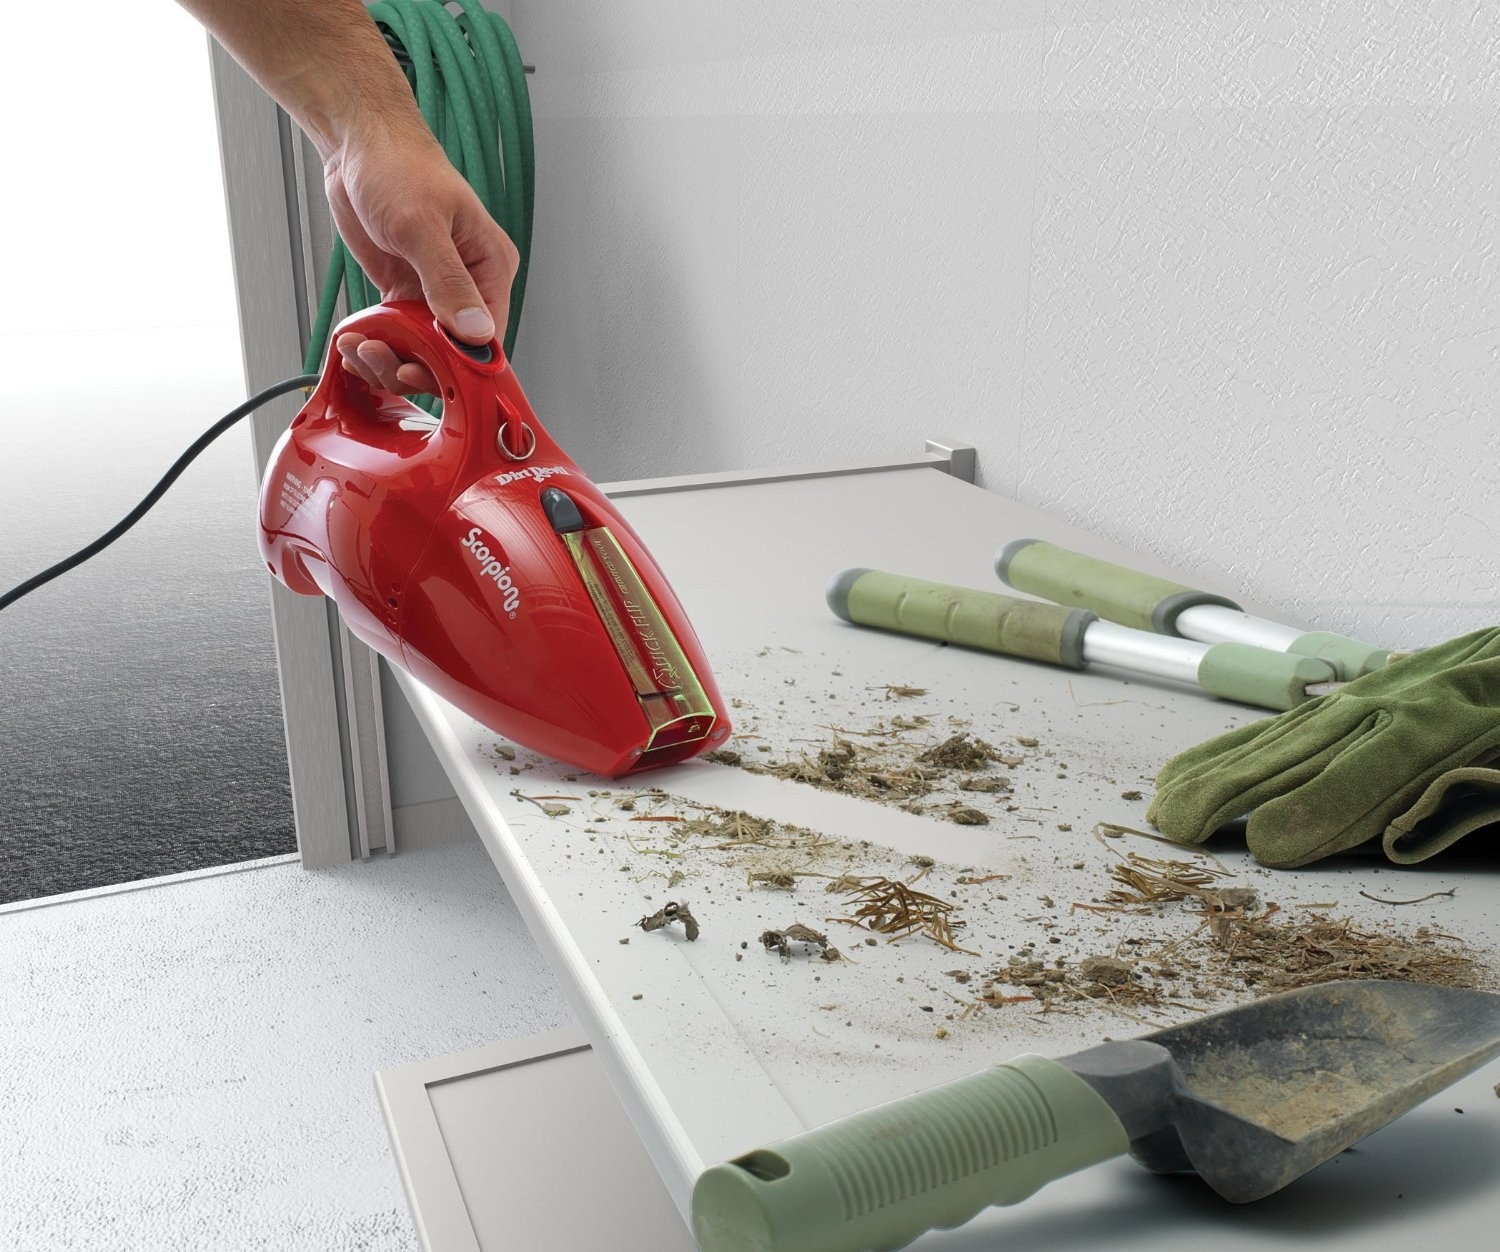 20 Amazing Vacuums That Will Change Your Cleaning Habits